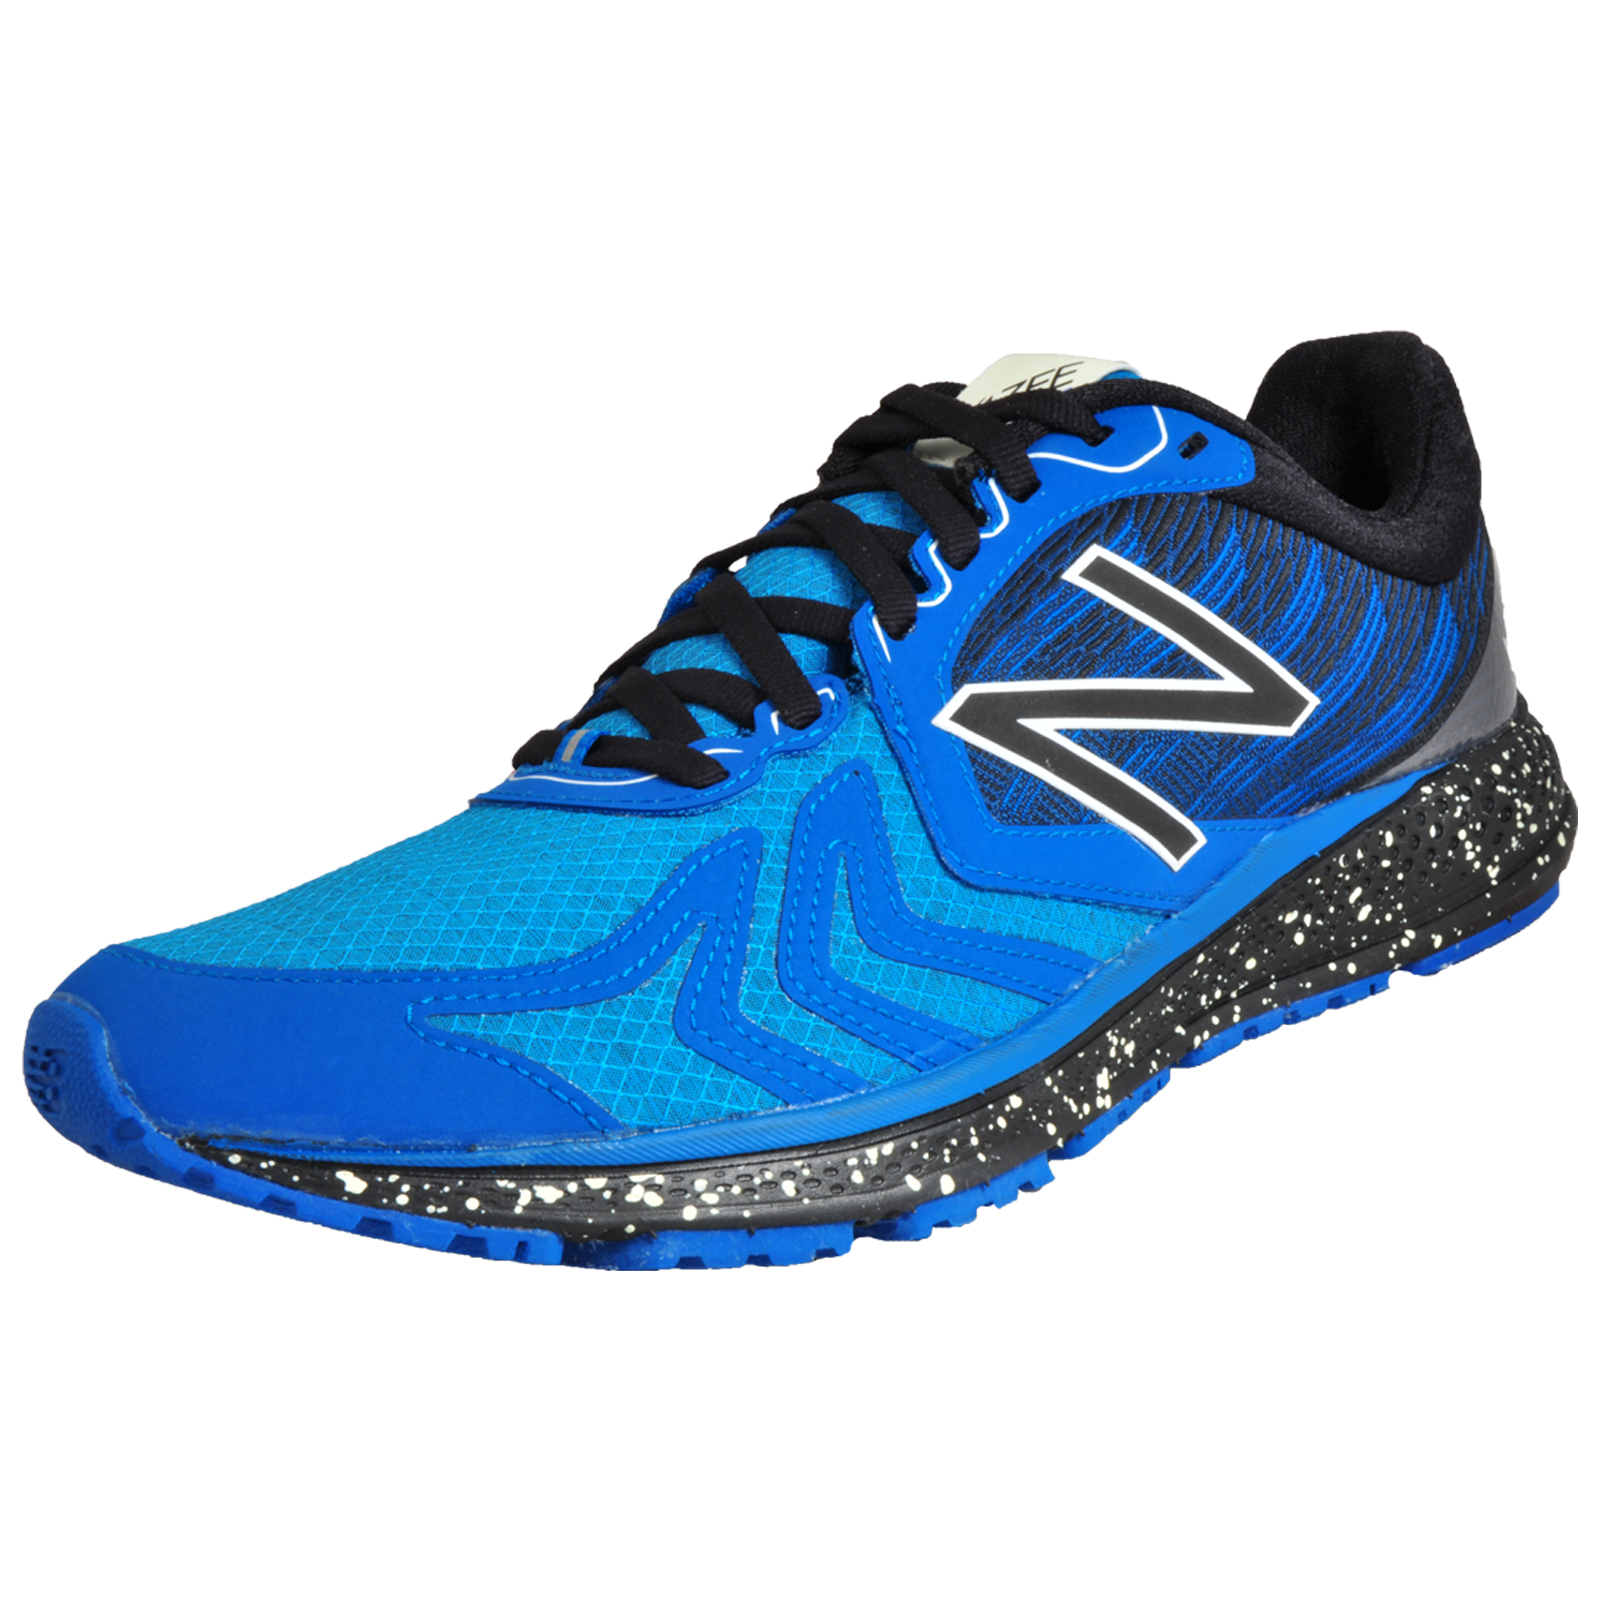 premium selection 55bfe bd4e7 Details about New Balance Vazee v2 Protect Pace Men's Premium Running Shoes  Trainers Blue